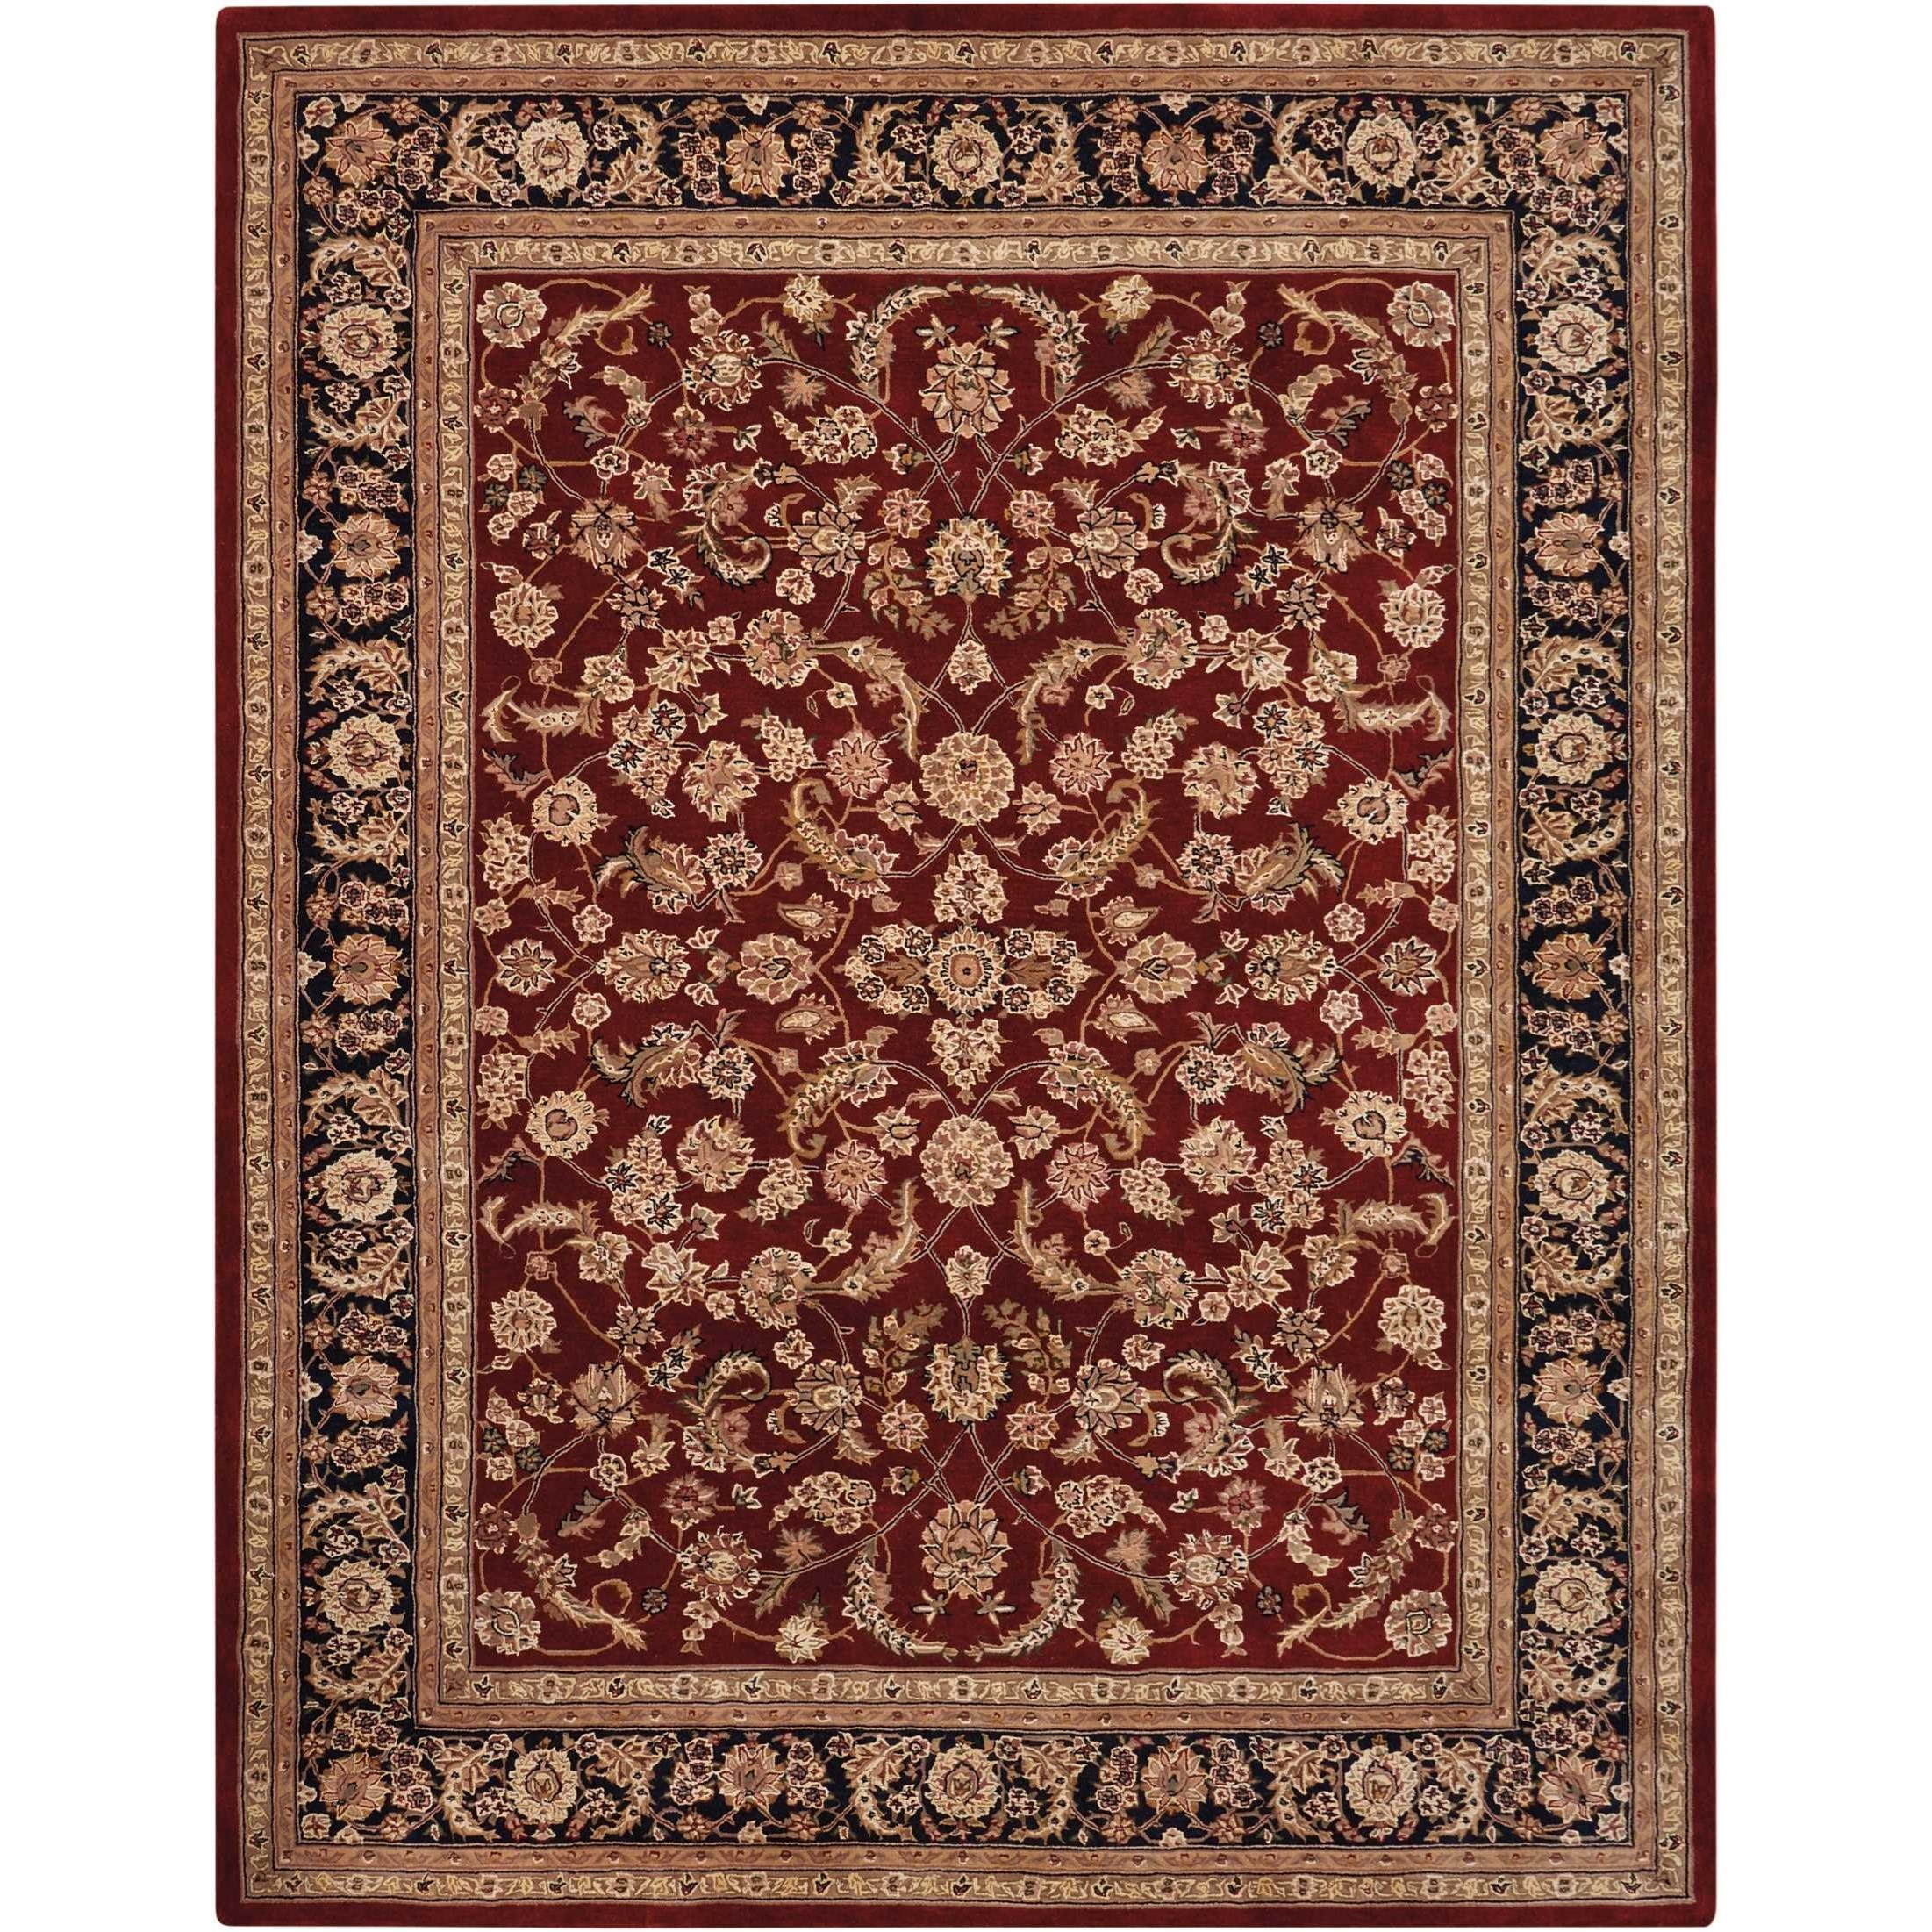 Nourison 2000 2000 2002 Dark Red Multicolor 12'x15'  Area  by Nourison at Home Collections Furniture